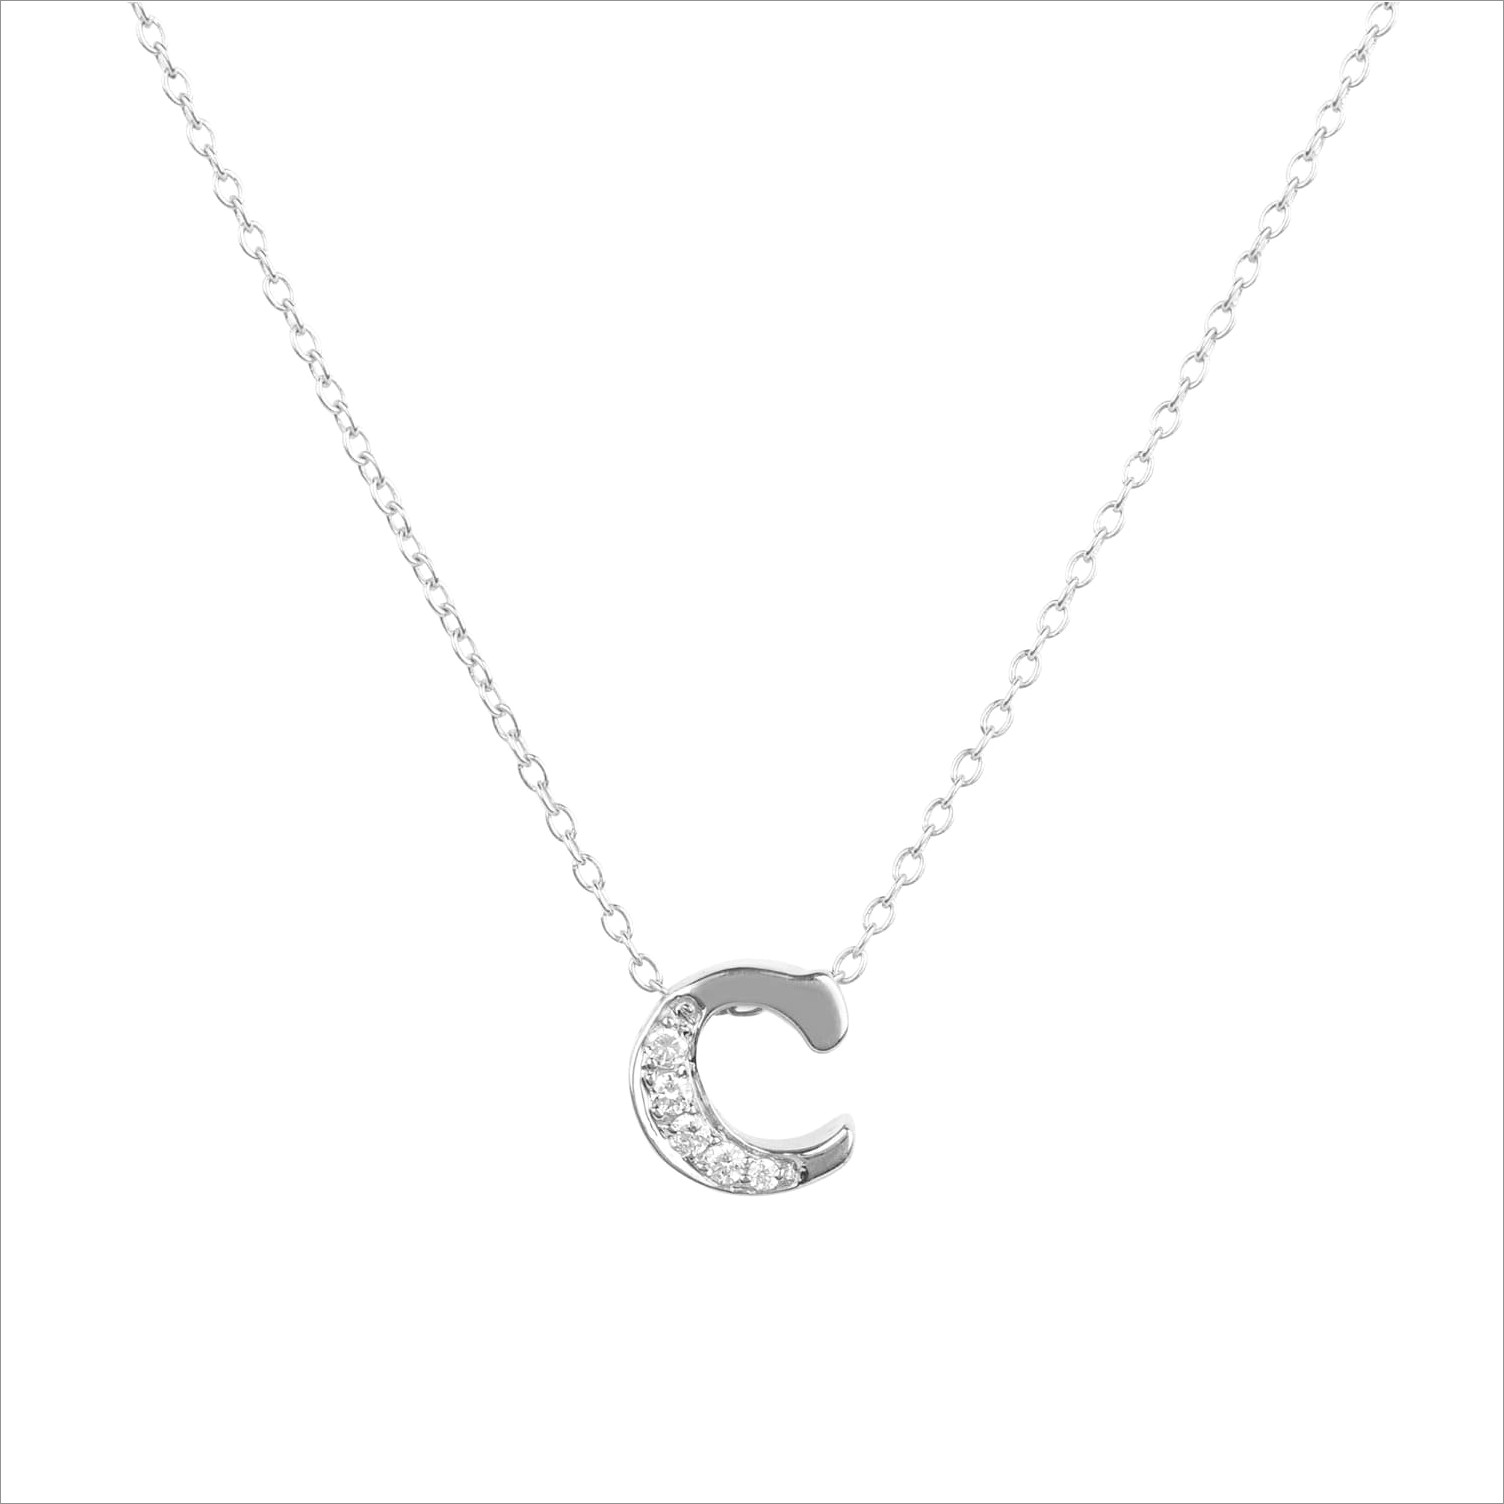 Letter C Diamond Pendant Necklace